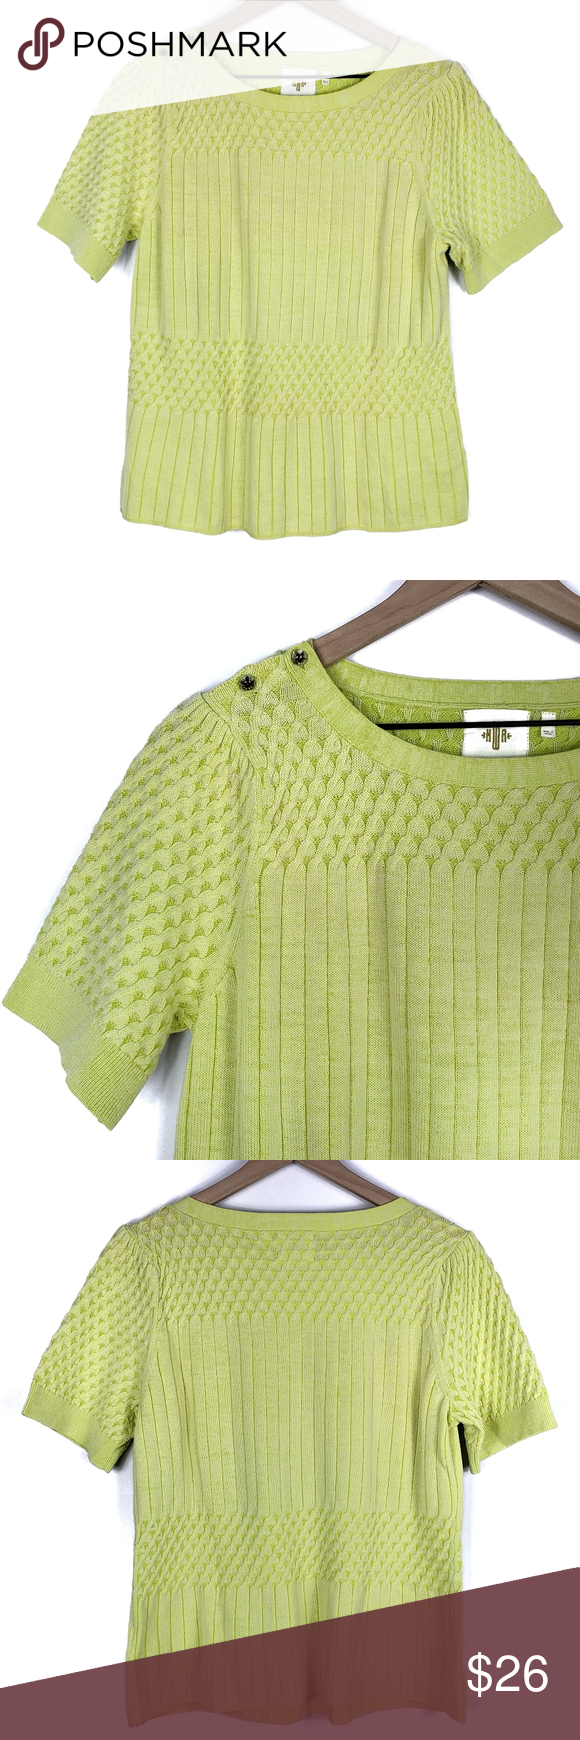 Anthro HWR Monogram Short Sleeve Sweater Neon yellow short sleeve sweater. Crew neck. Two button detail at the right shoulder. Ribbed, textured knit. Pullover styling. HWR Monogram by Anthropologie. In excellent, pre-owned condition. No flaws. Underarm to underarm:22